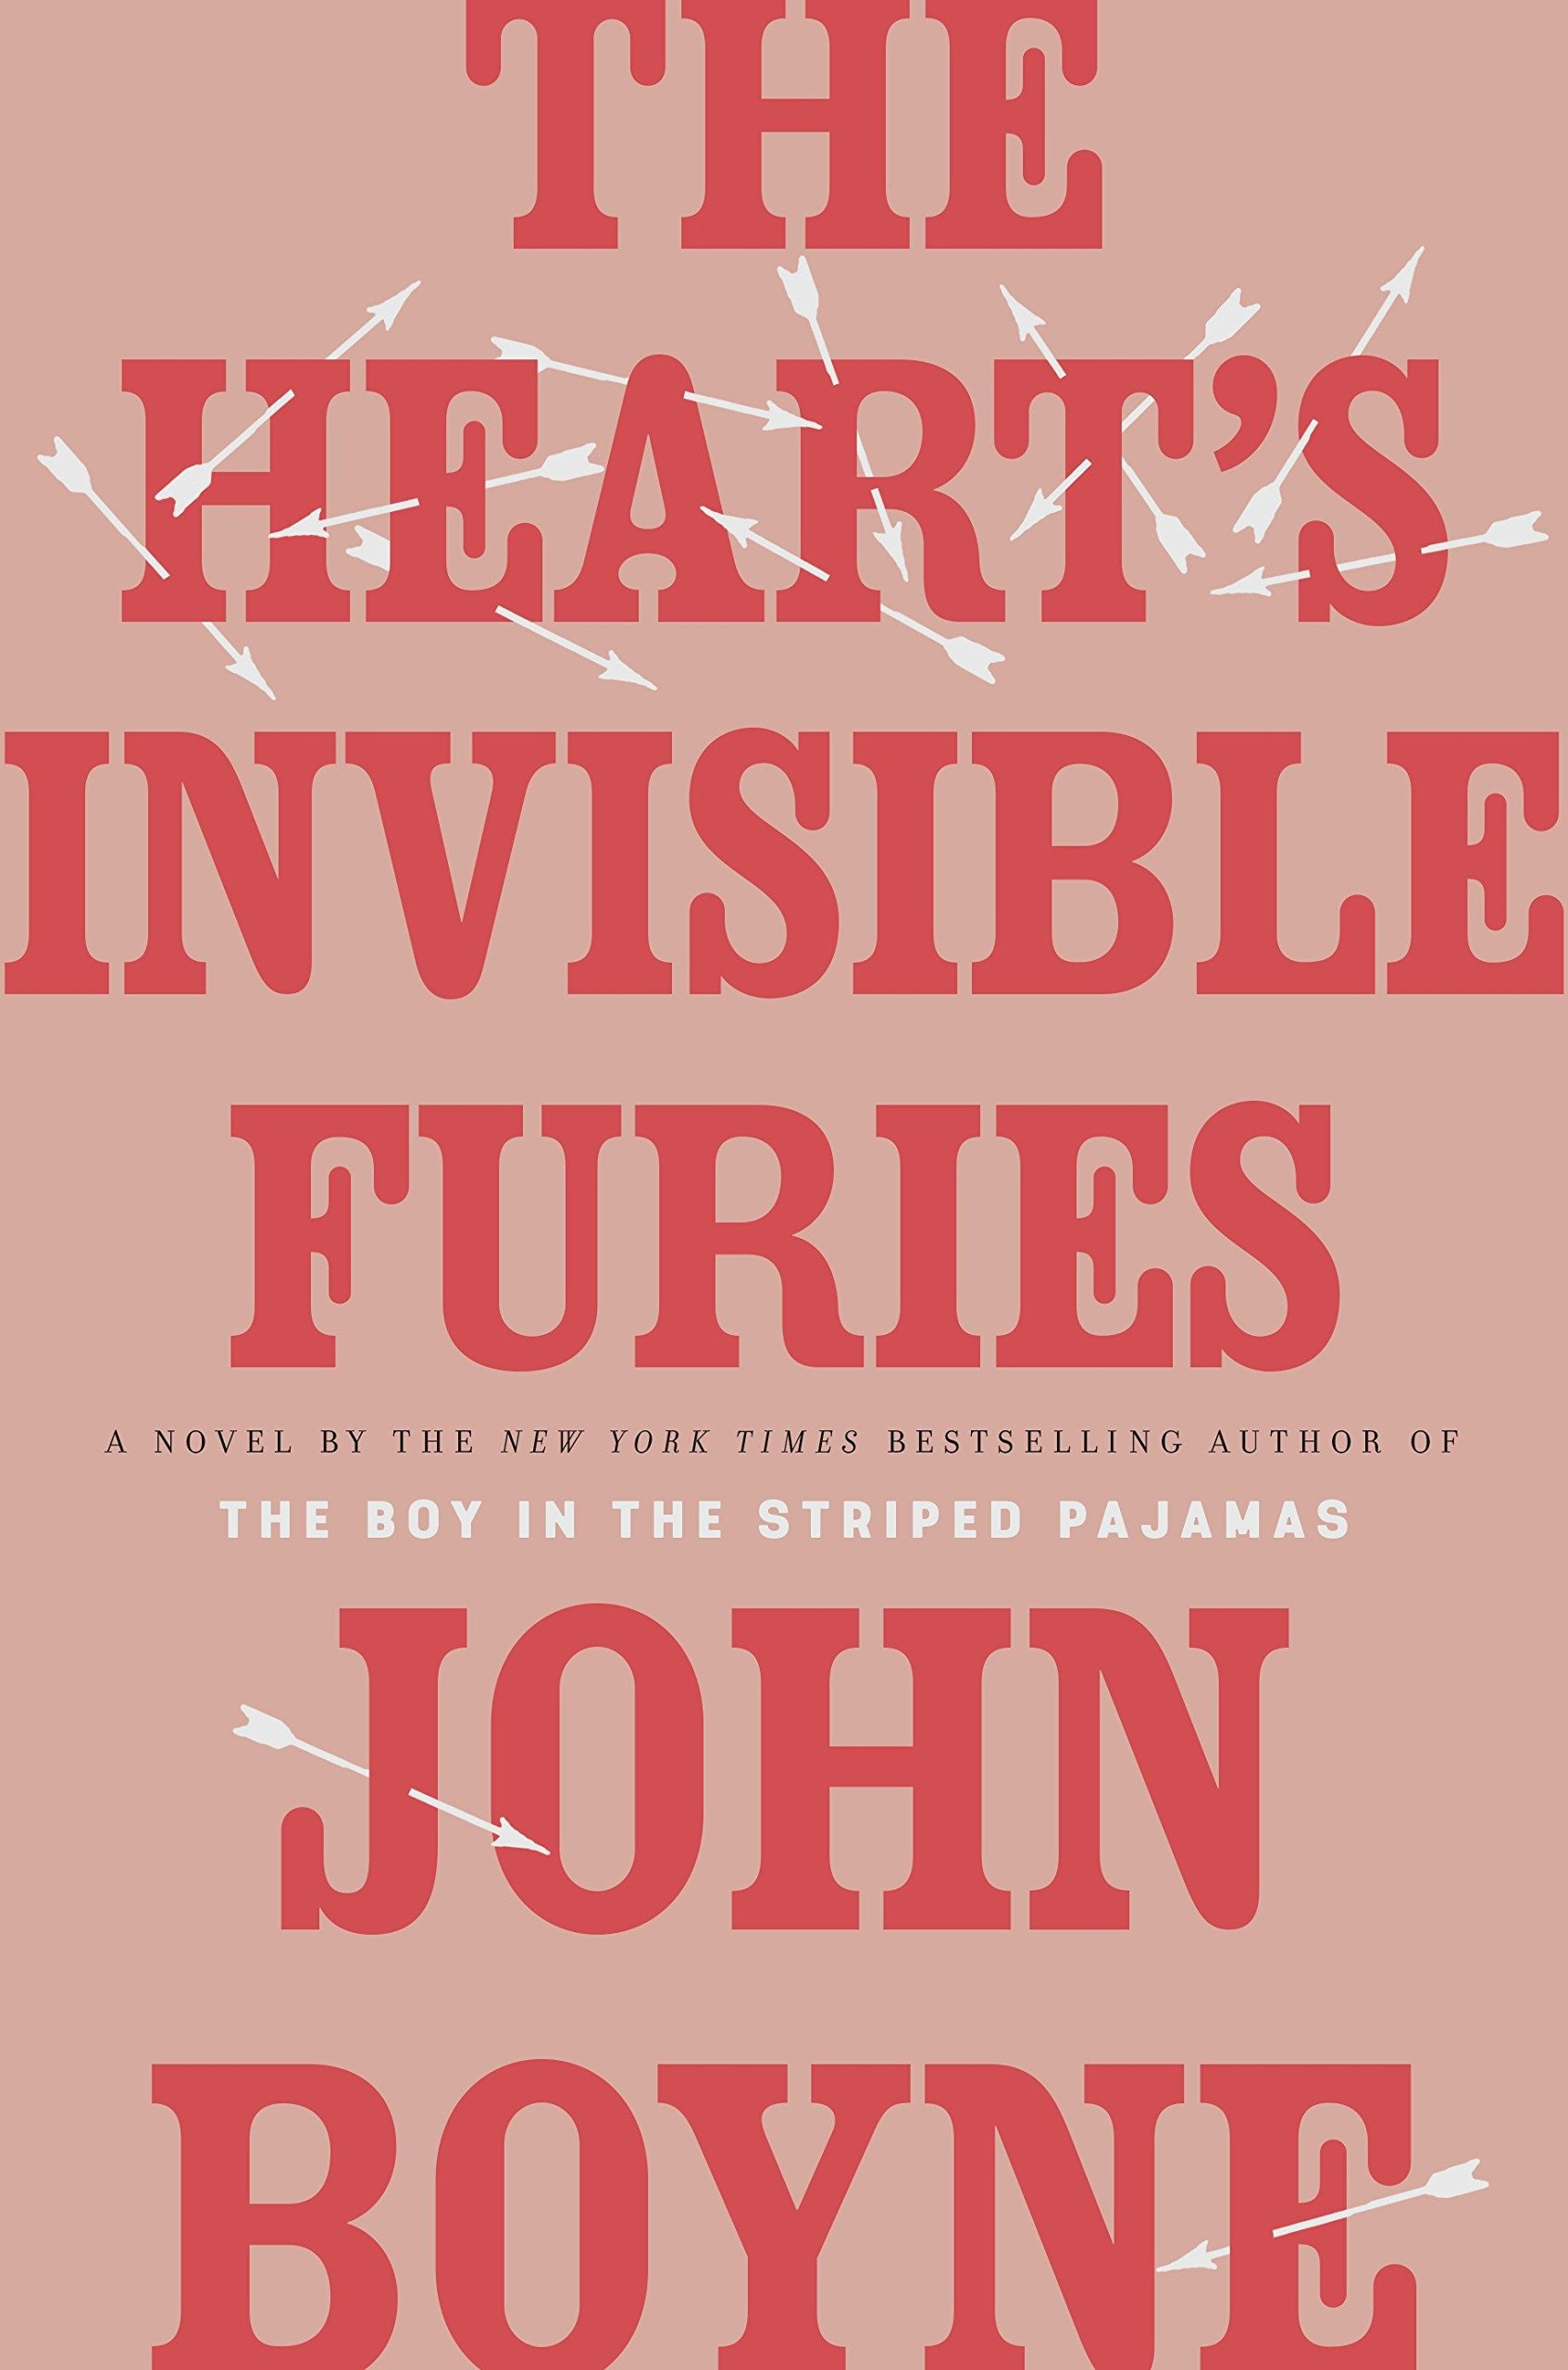 Image result for heart's invisible furies book cover